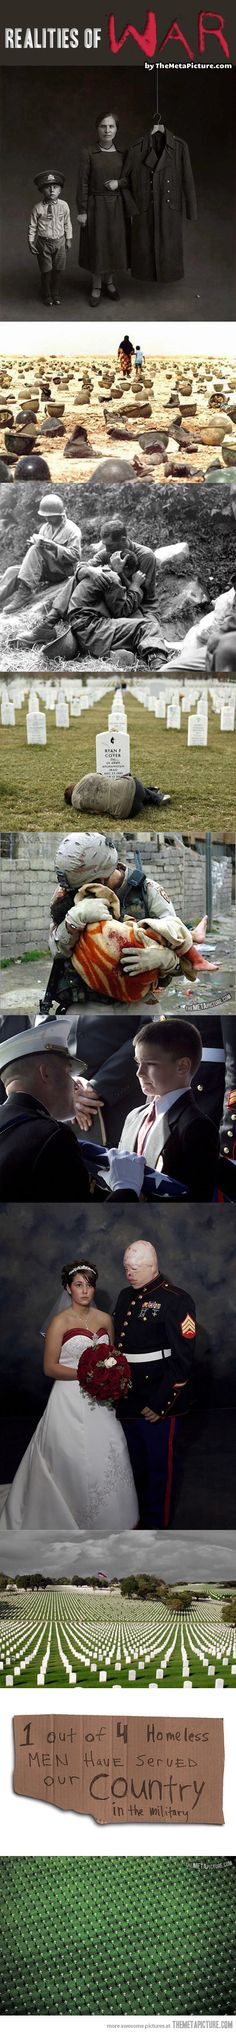 Realities of war… Very heart breaking. Freedom isn't free. Anyone who disrespects US military personnel should try out living in another country. America is better of without individuals who can't appreciate the sacrifices that secure their liberty.